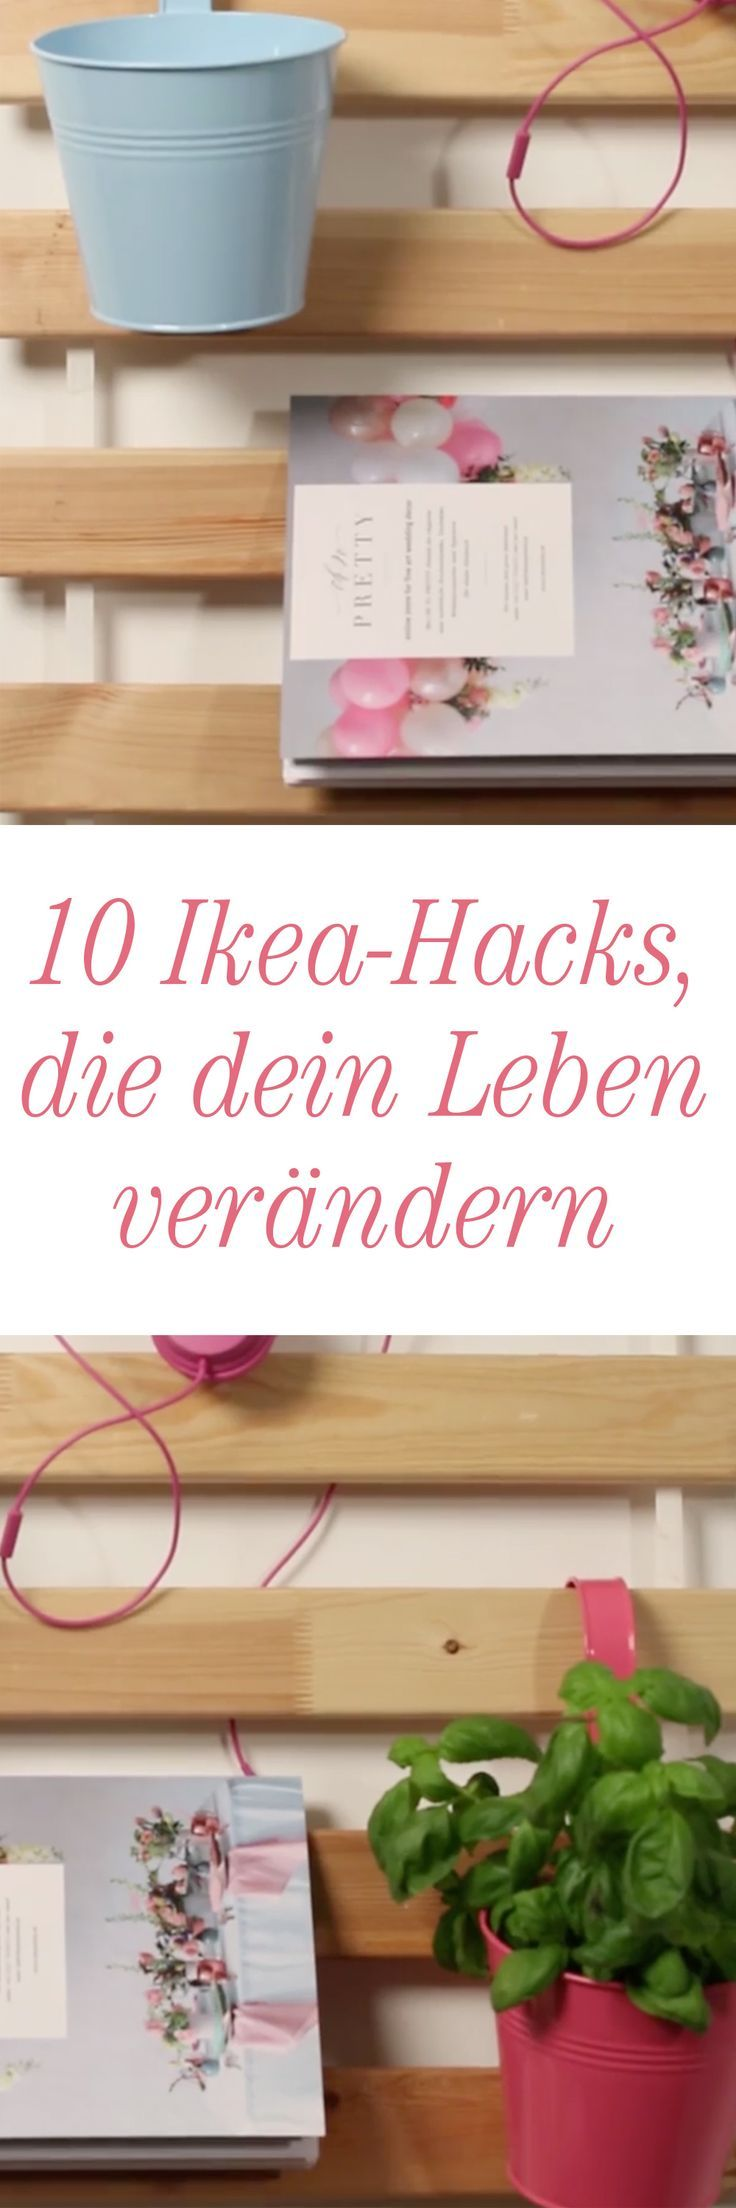 best 20+ ikea badmöbel ideas on pinterest | bad hacks, badschränke